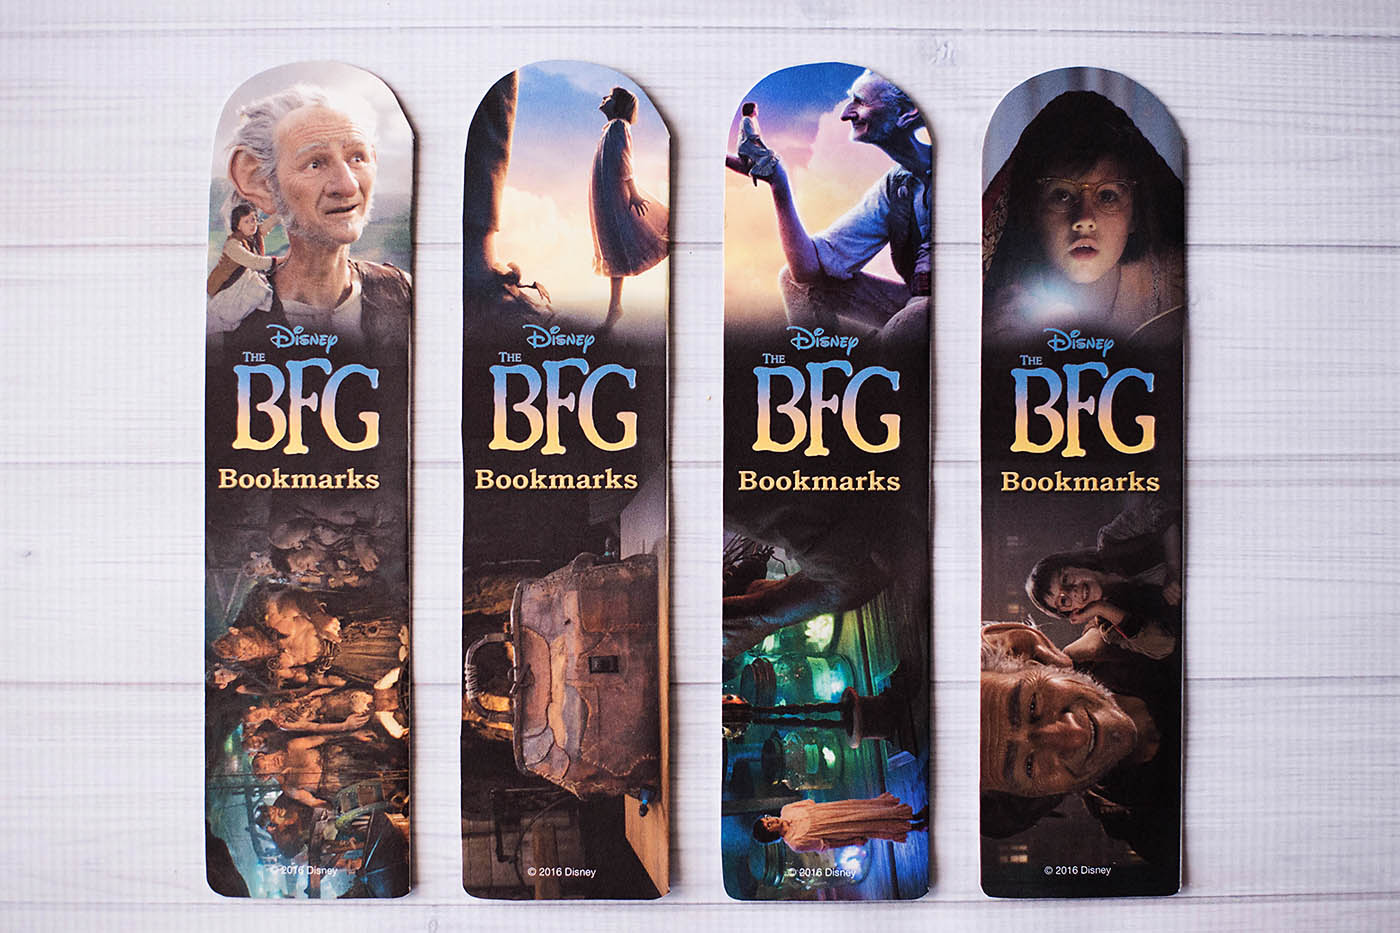 The BFG printable bookmarks